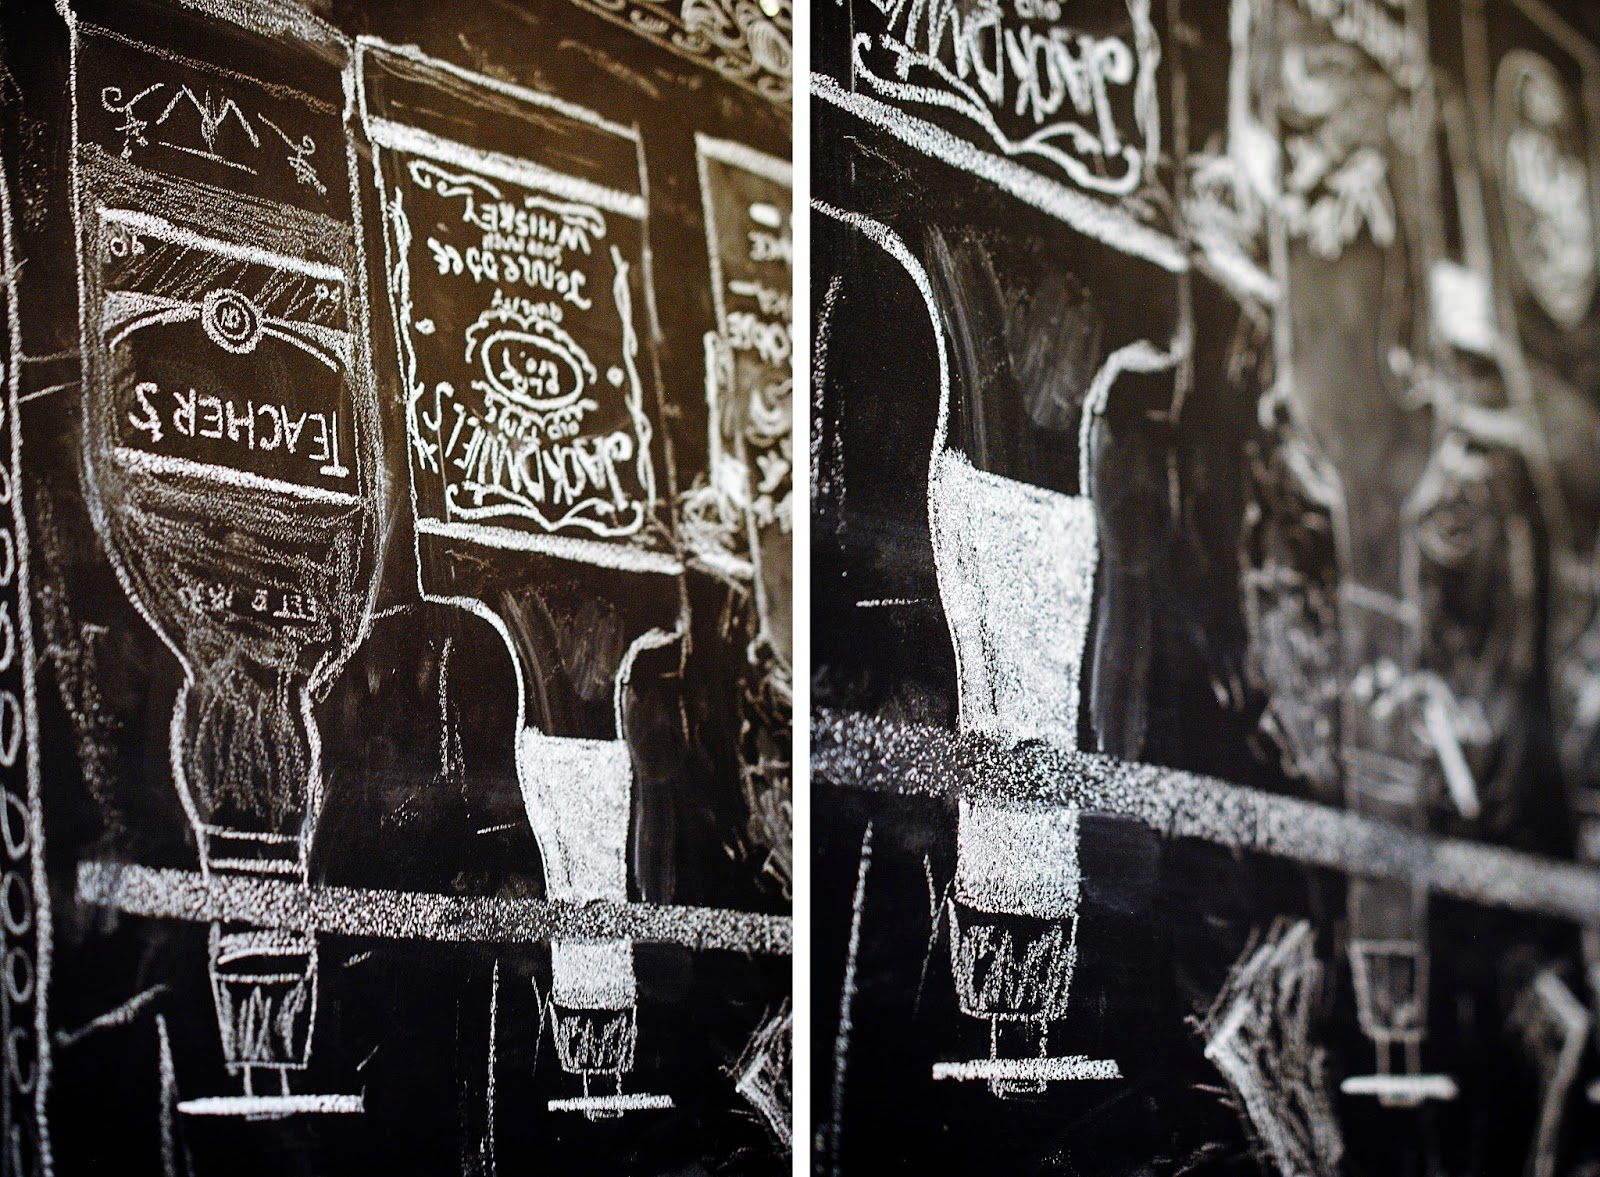 DIY Blackboard Art | Motte's Blog